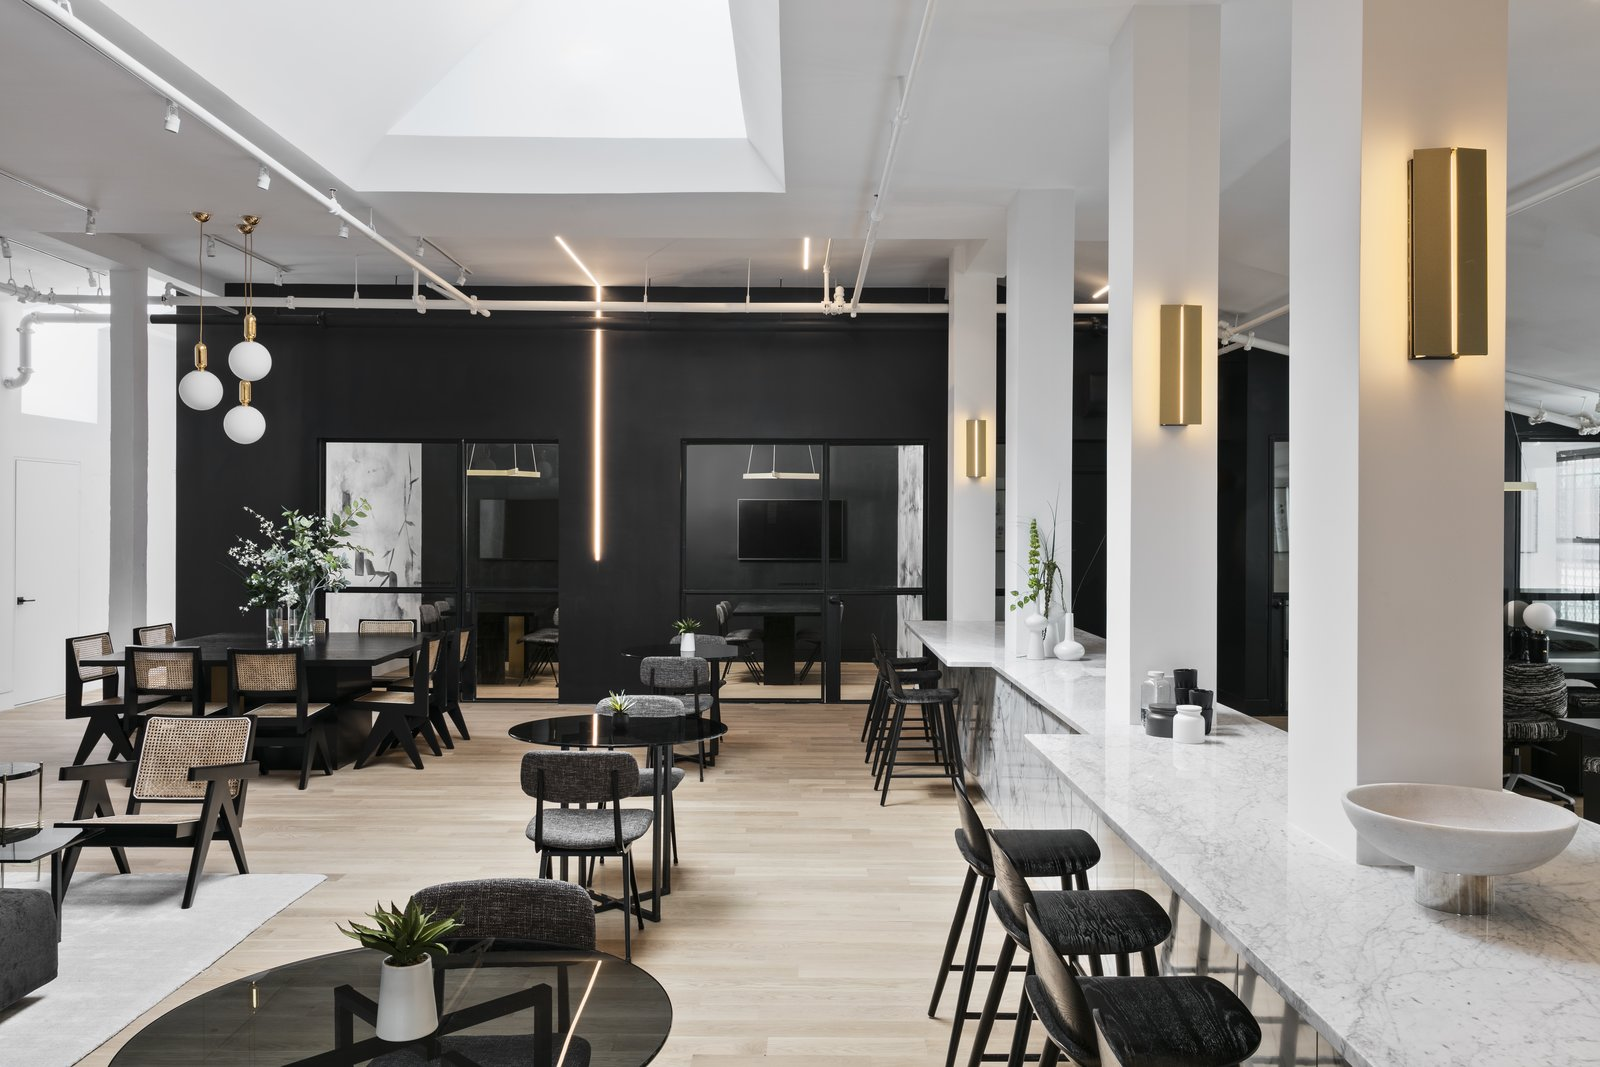 Dining Room, Chair, Stools, Bar, Table, Wall Lighting, Pendant Lighting, and Light Hardwood Floor  Photo 7 of 12 in A Peek Inside a New Beautiful Co-Working Space For Creatives in Brooklyn